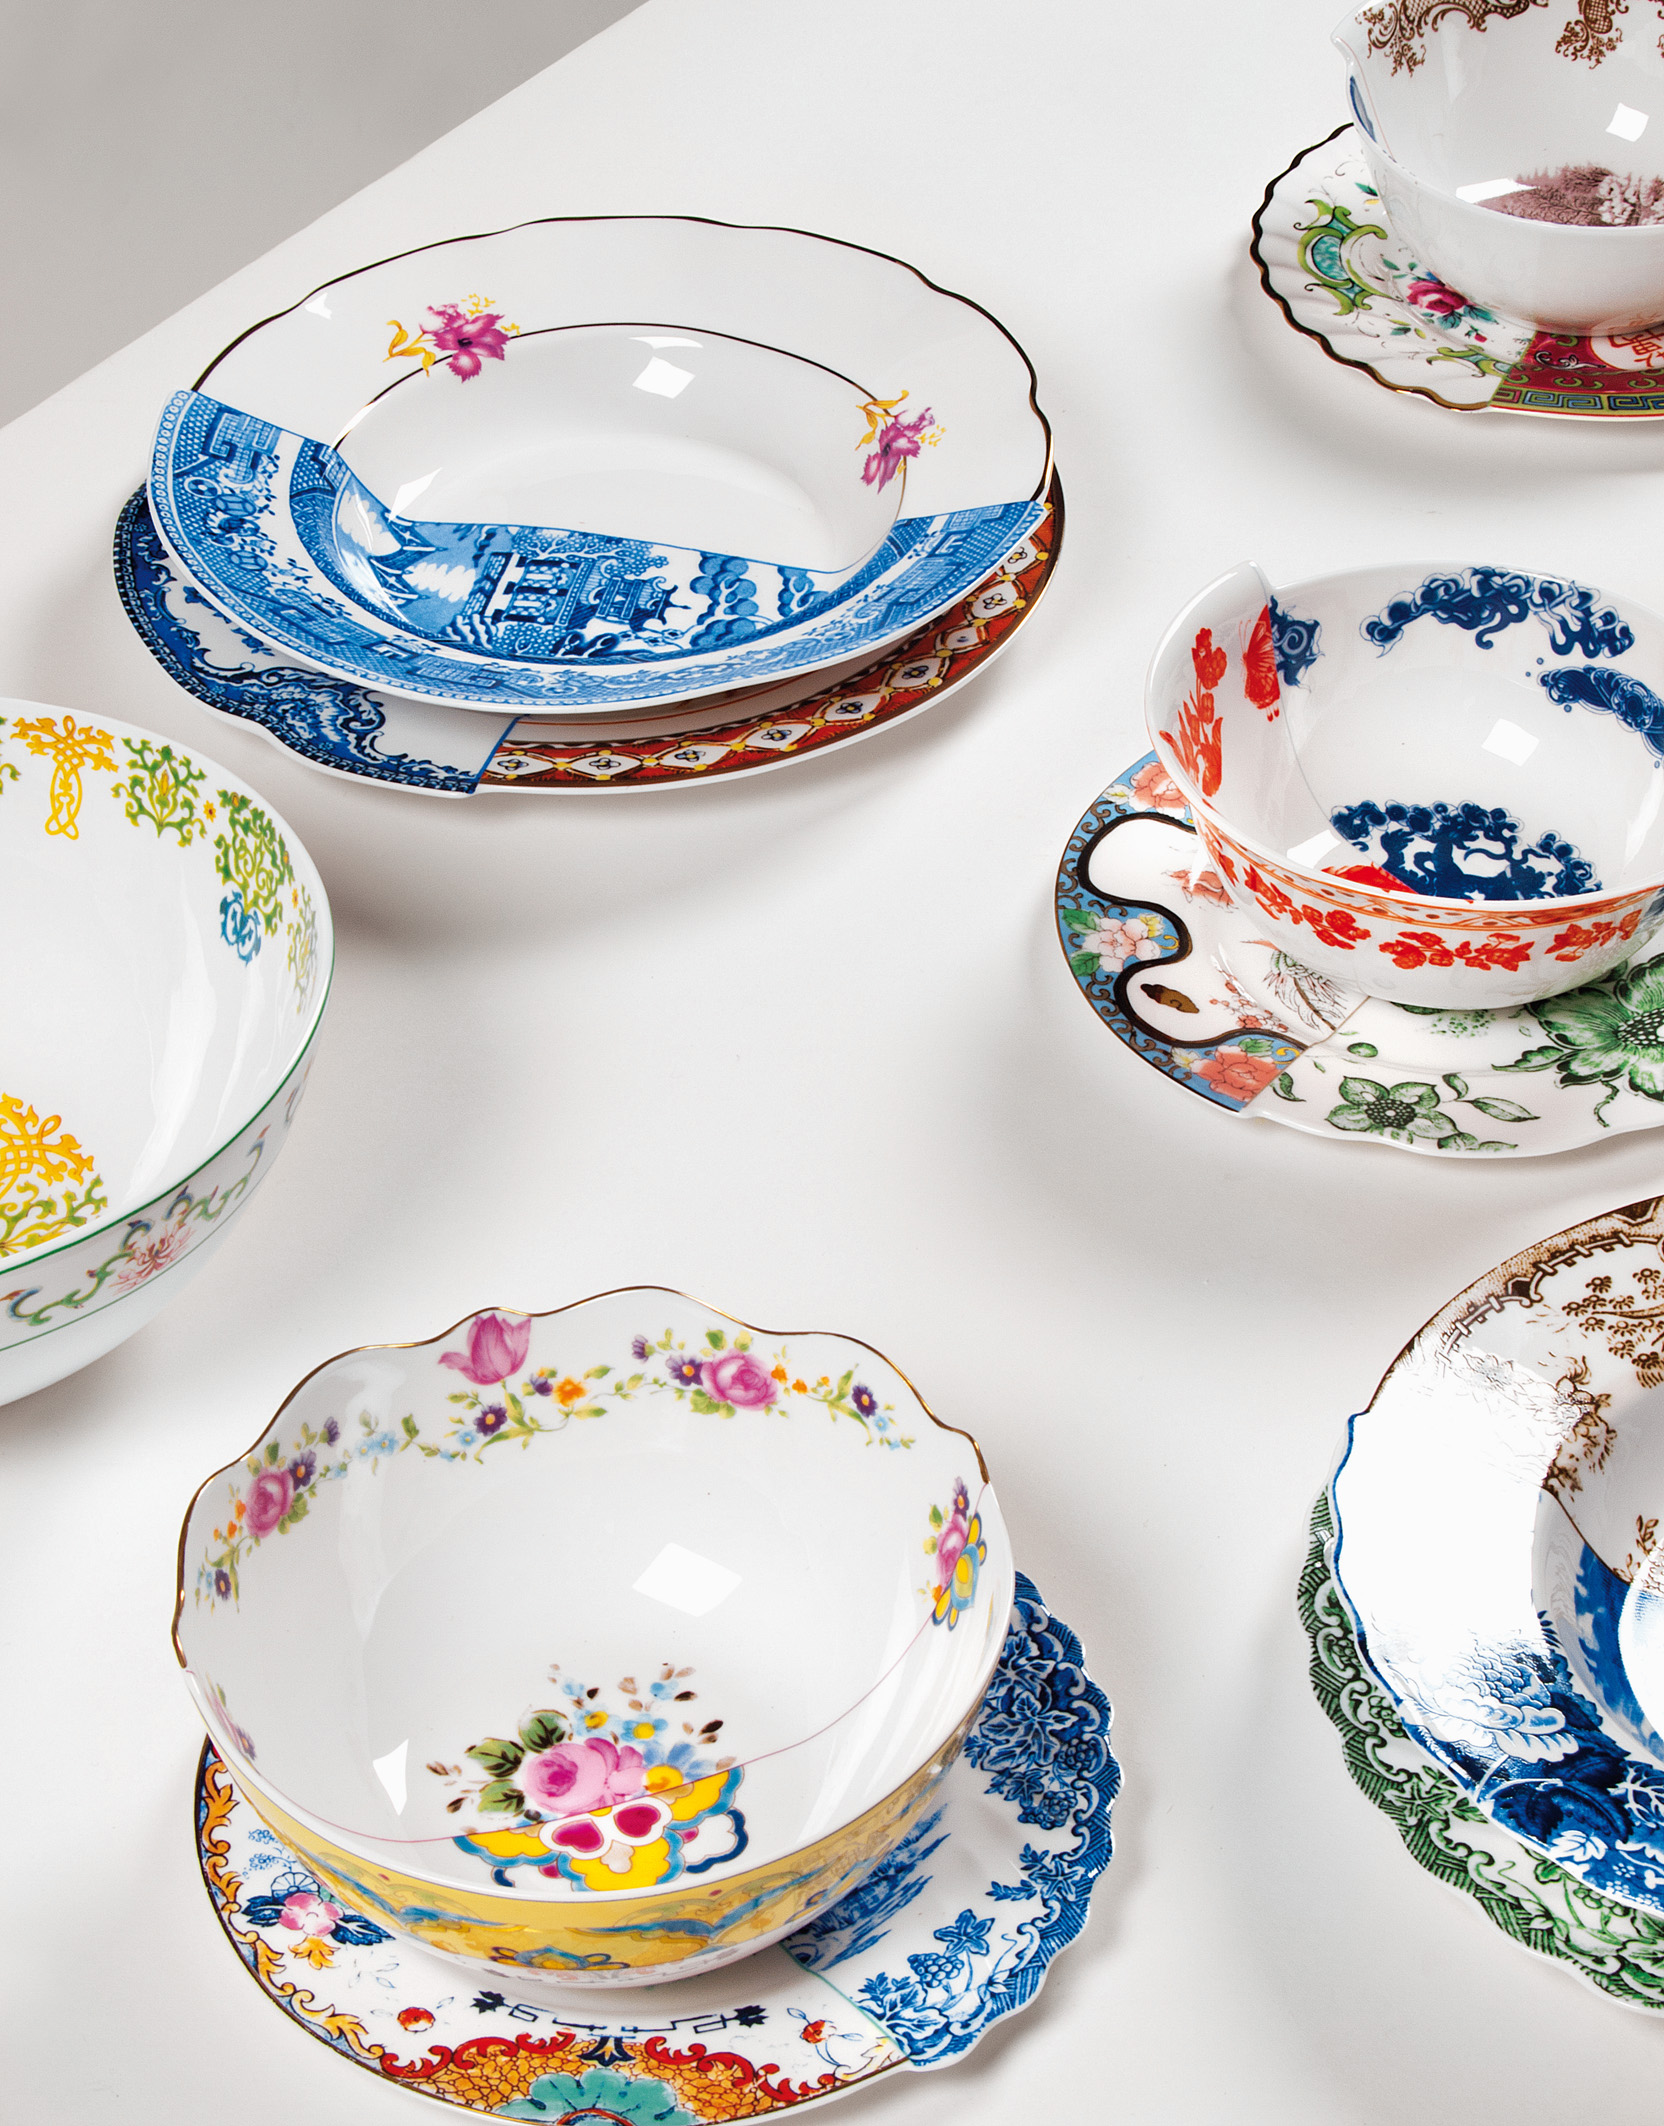 \ HYBRID\  Handcrafted Dinnerware by CTRLZAK for SELETTI  sc 1 st  Materialicious & HYBRID\